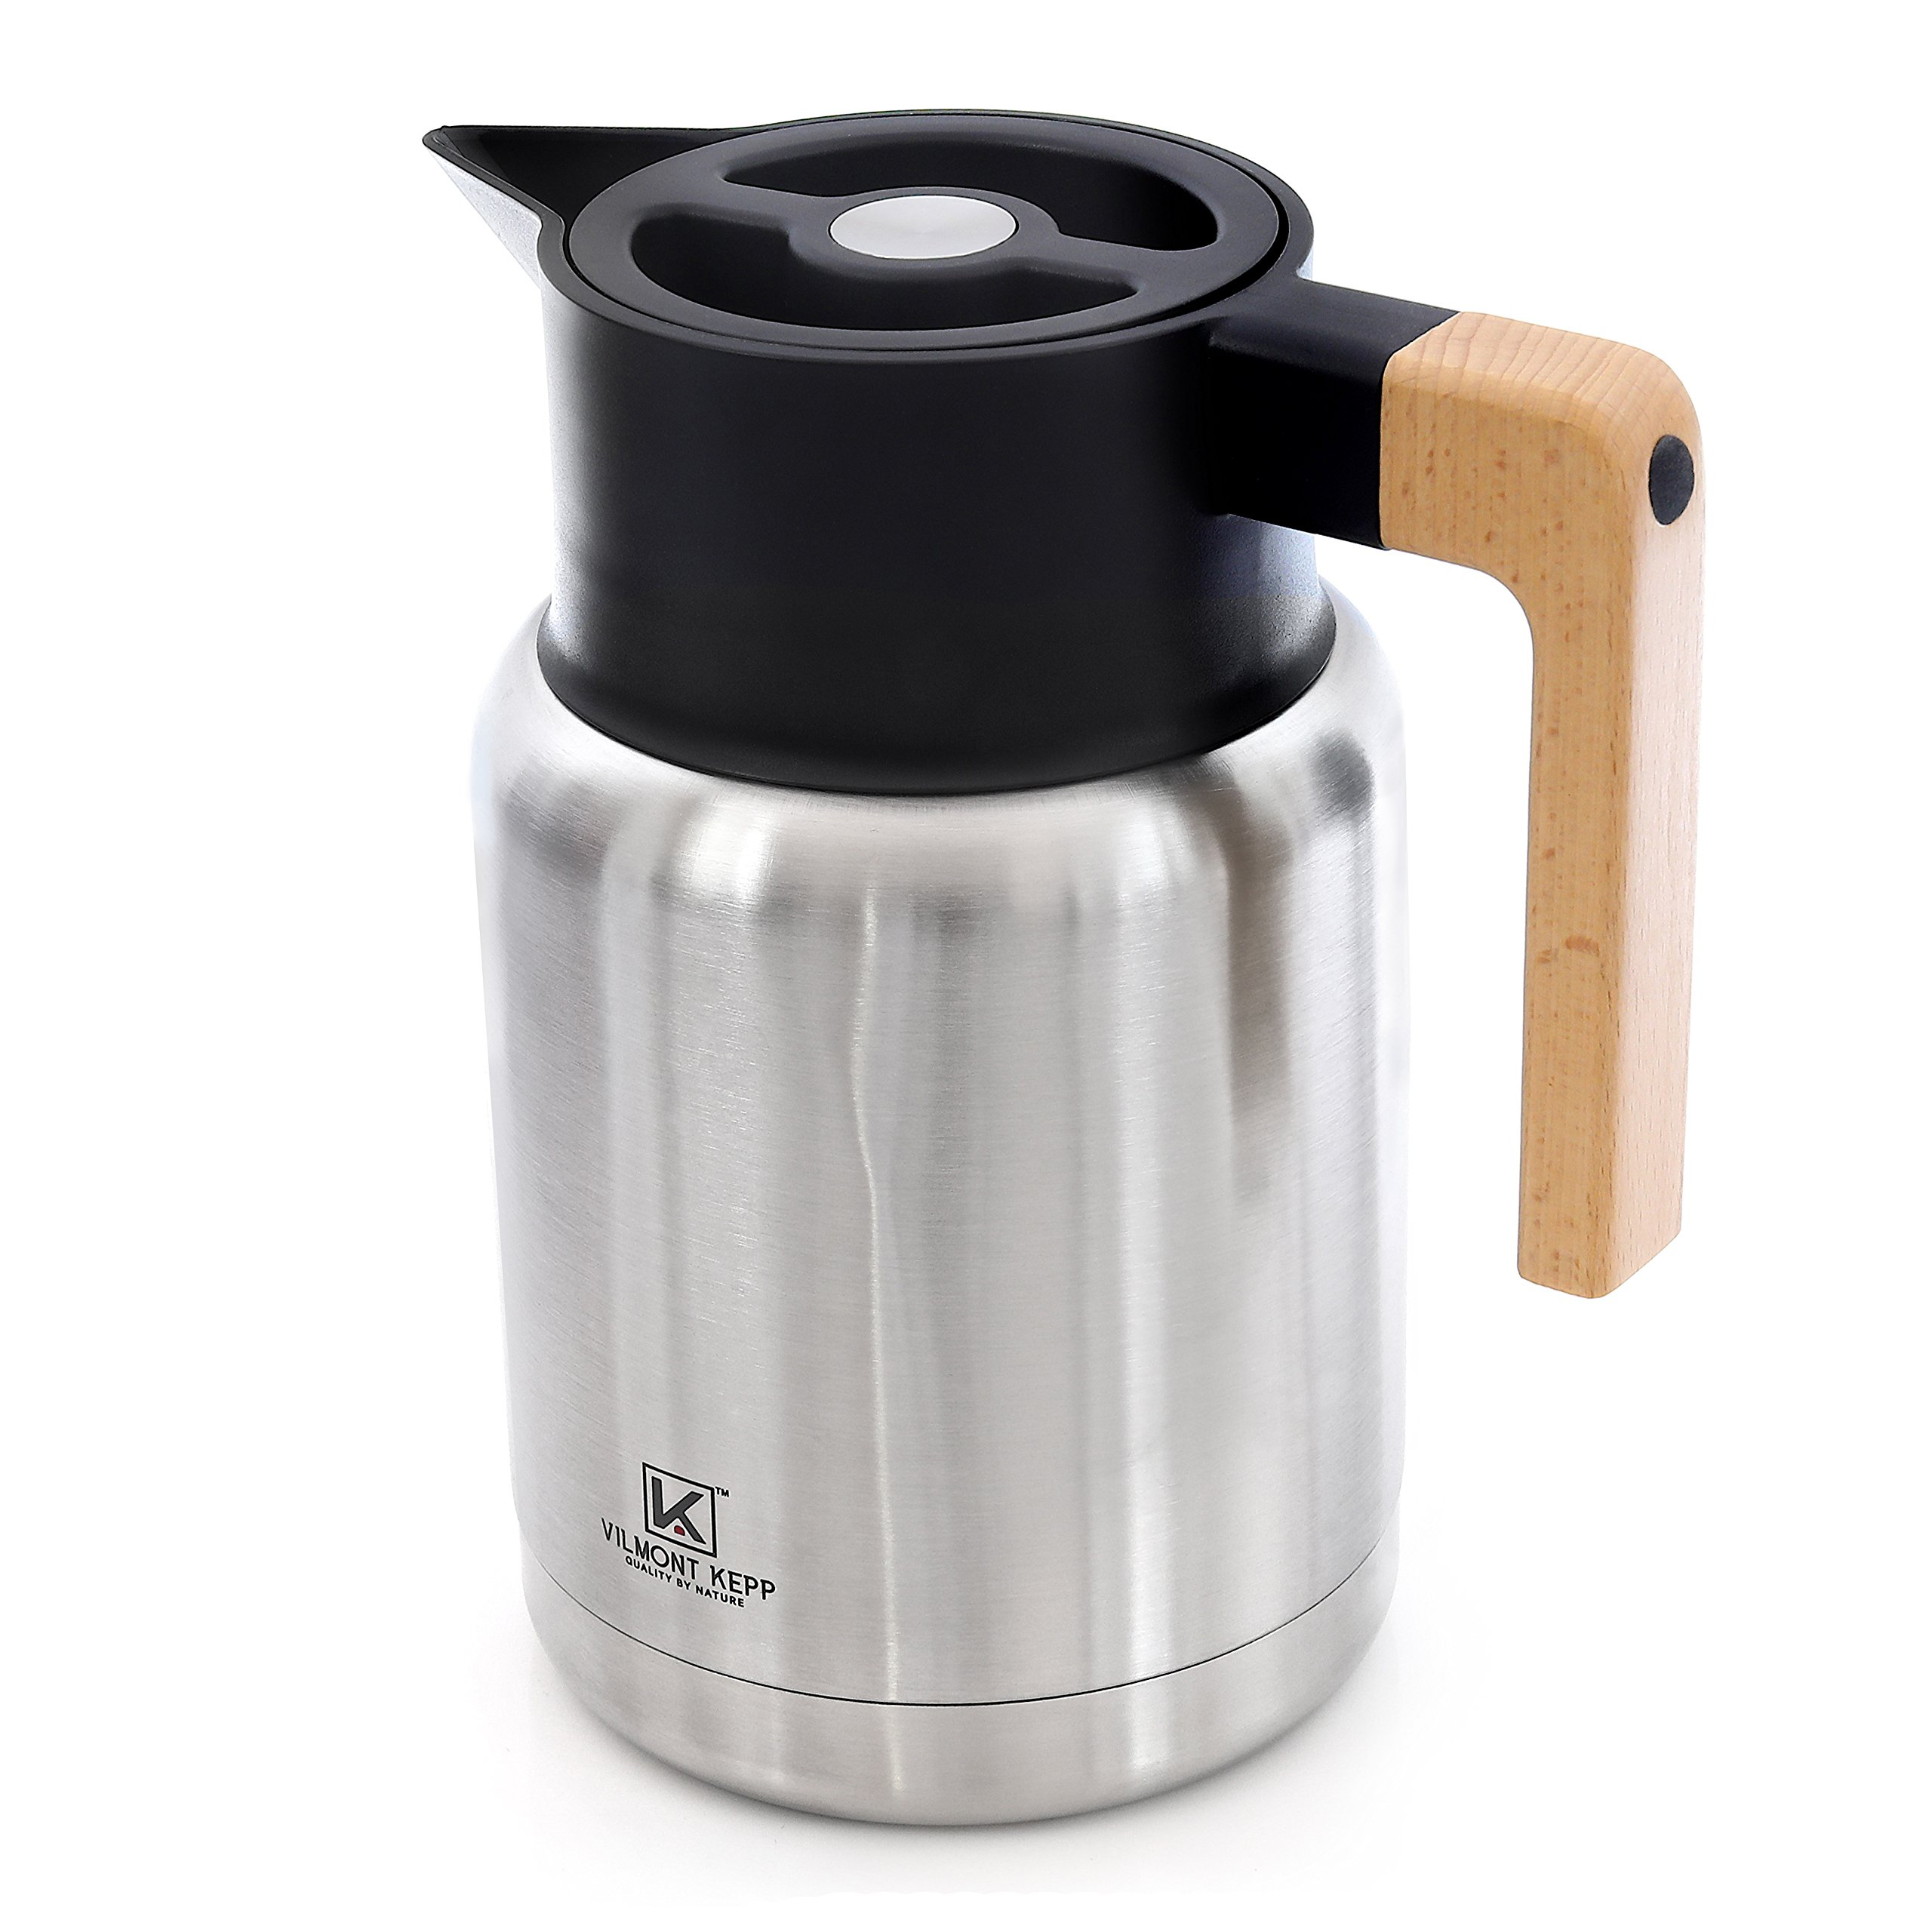 Vilmont Kepp Premium Heavy Duty Large (50oz) Thermal Carafe Coffee or Tea Dispenser Thermos - Double Walled Stainless Steel, Hot and Cold Beverages, Beechwood Handle, Home or Office, Gift Boxed